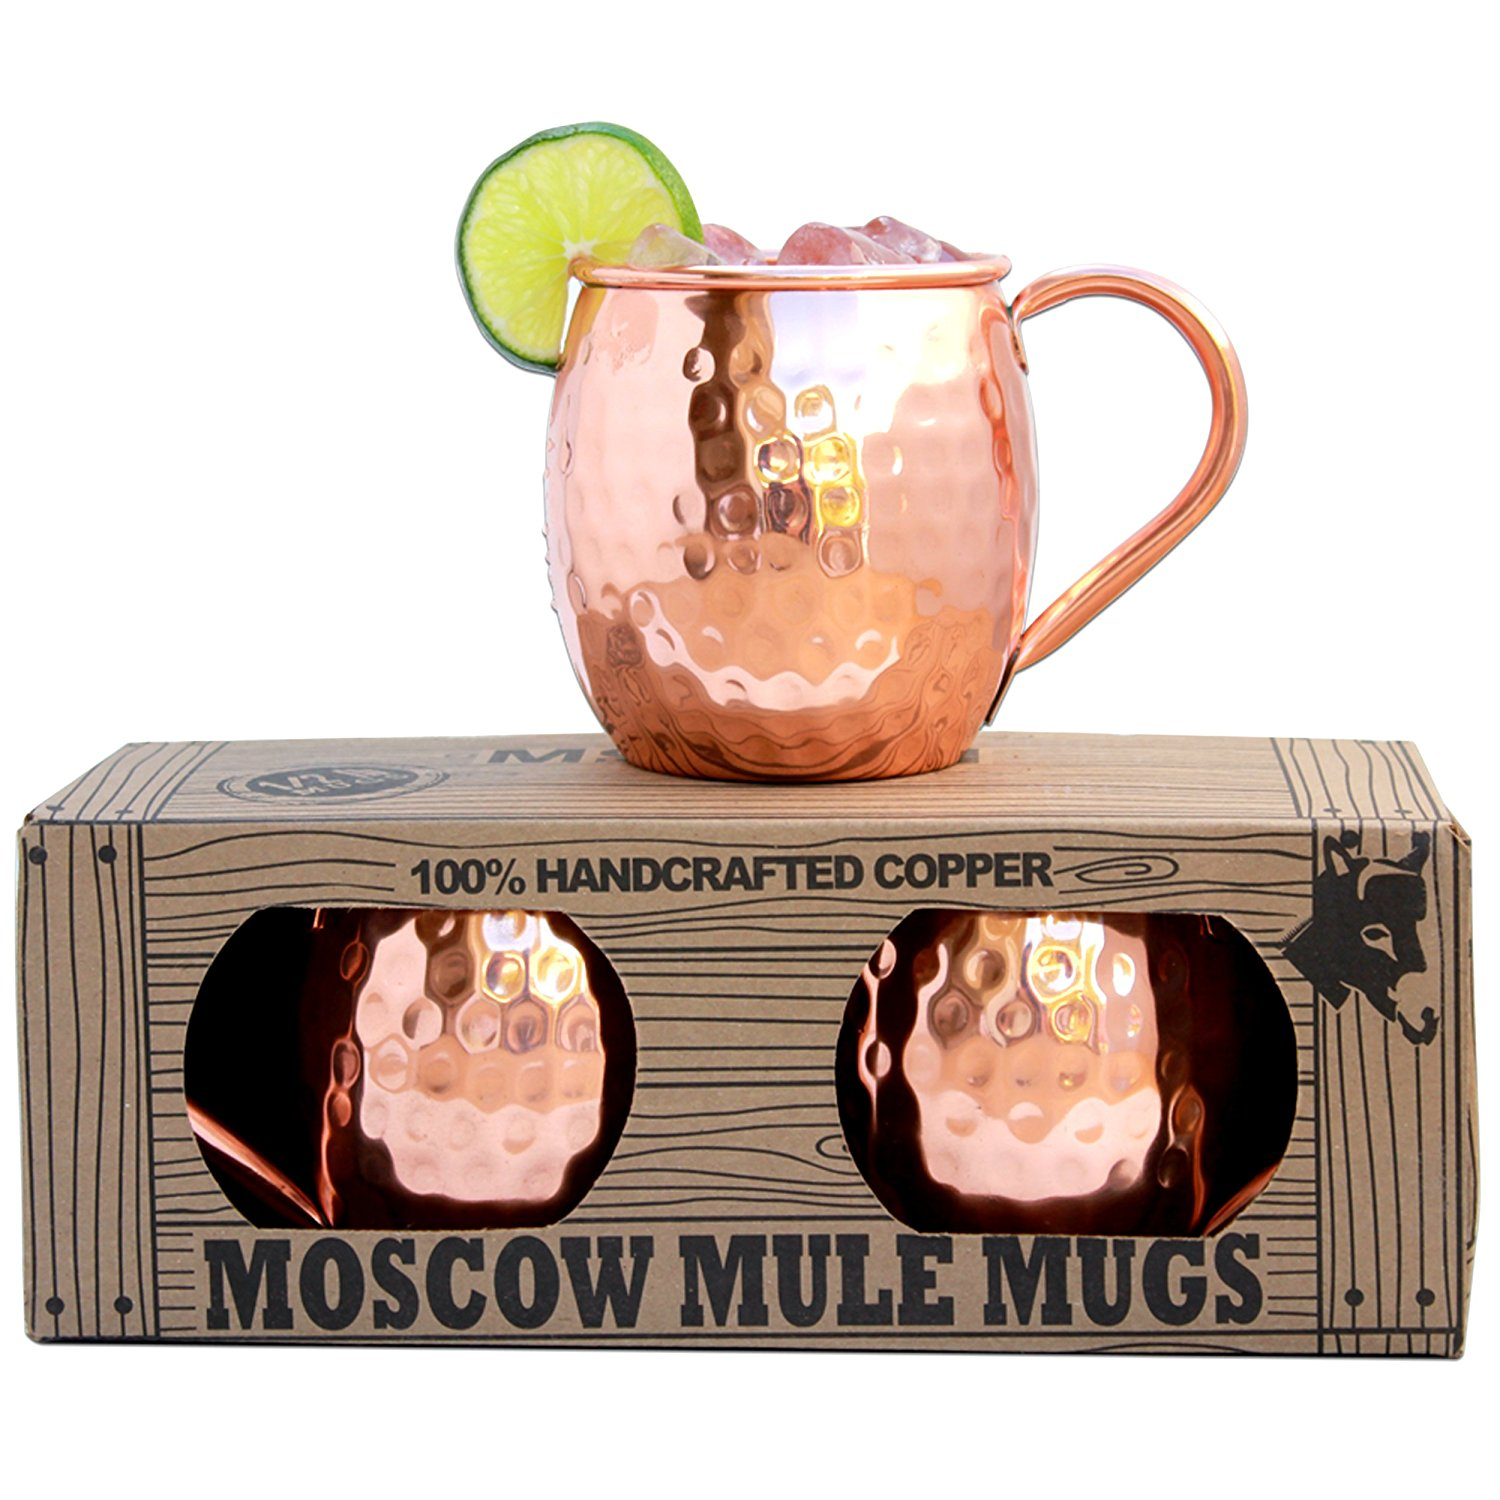 Best Copper Mule Mugs-Morken Barware Moscow Mule Mugs